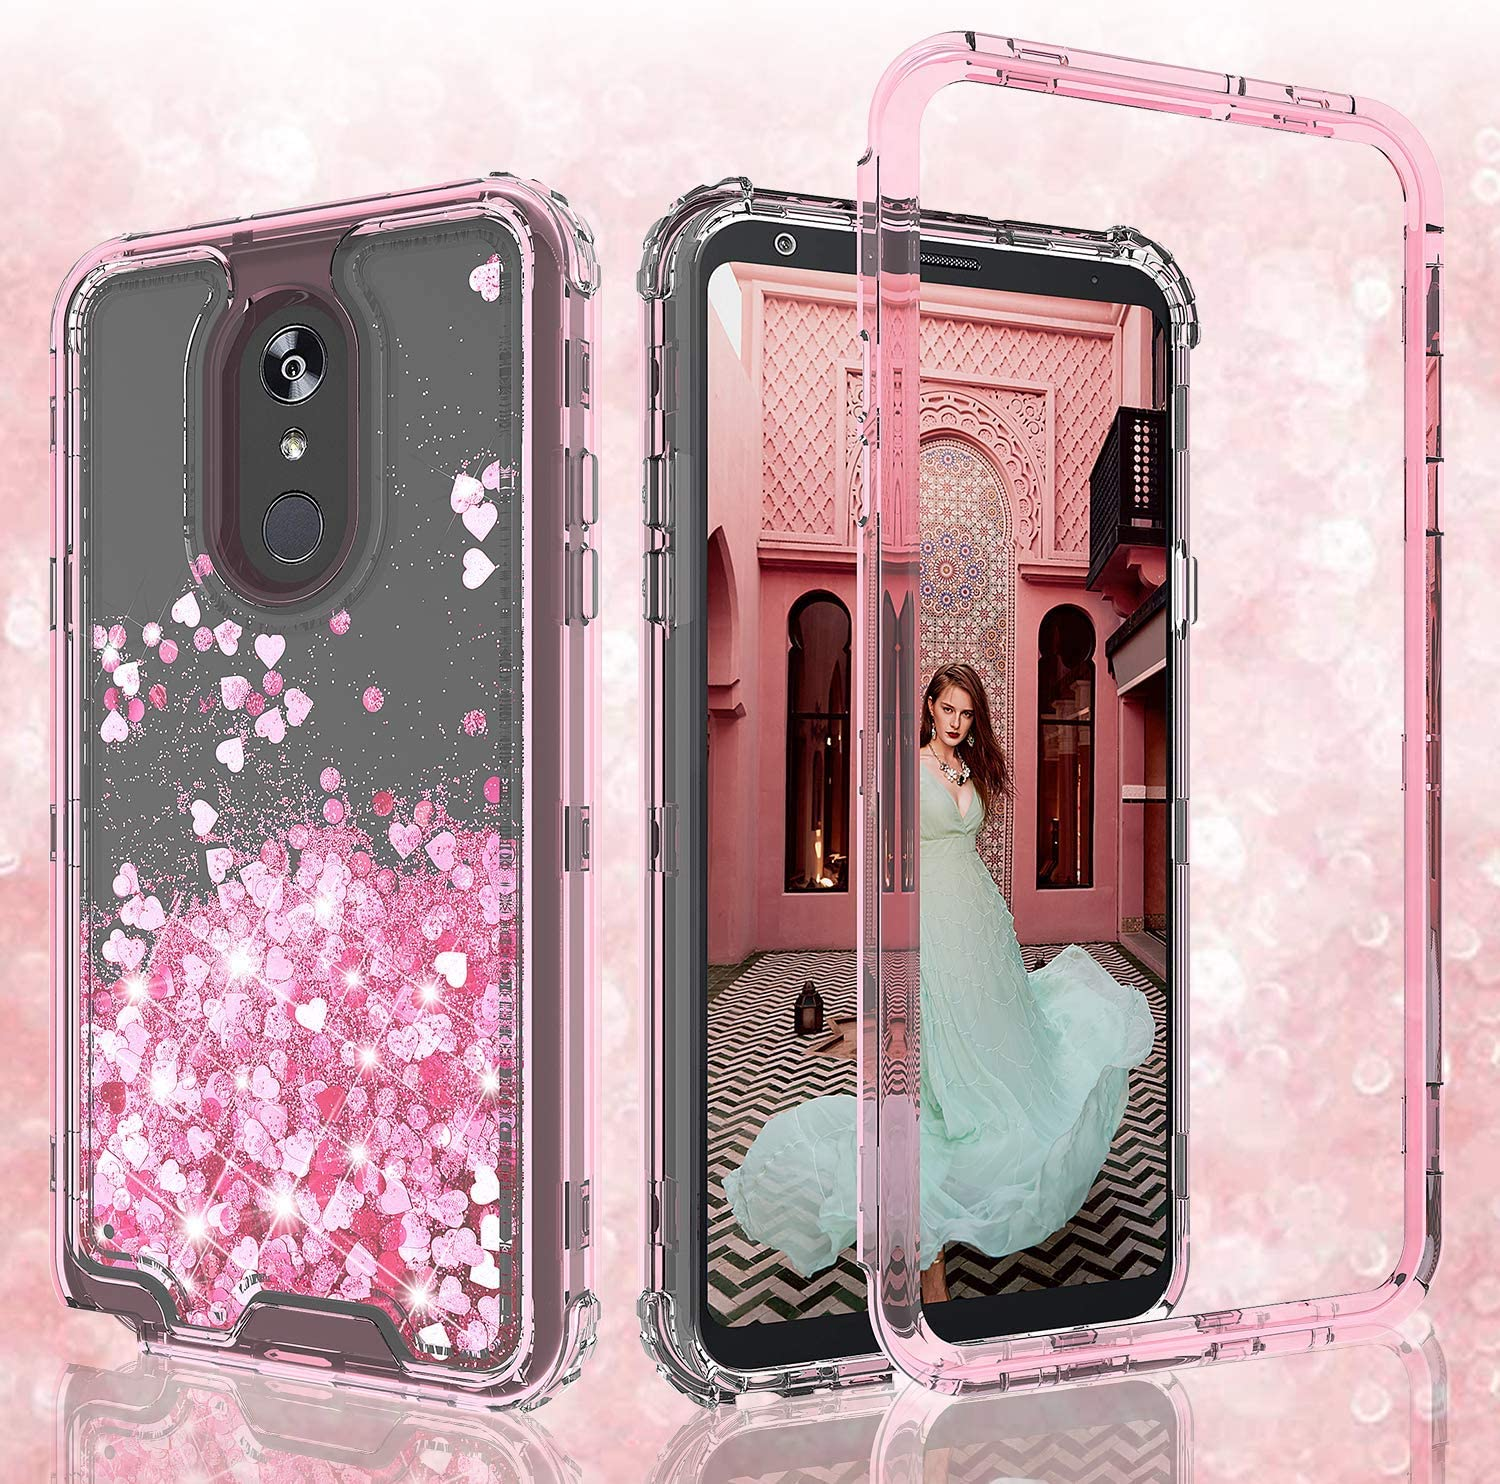 Coverlab Cases for LG Rebel 4/Aristo 3/Phoenix 4/Zone 4/Risio 3/Tribute Empire Case, Hard Clear Glitter Sparkle Liquid Heavy Duty Shockproof Three Layer Protective Bling Cases for LG Aristo 2 - Pink